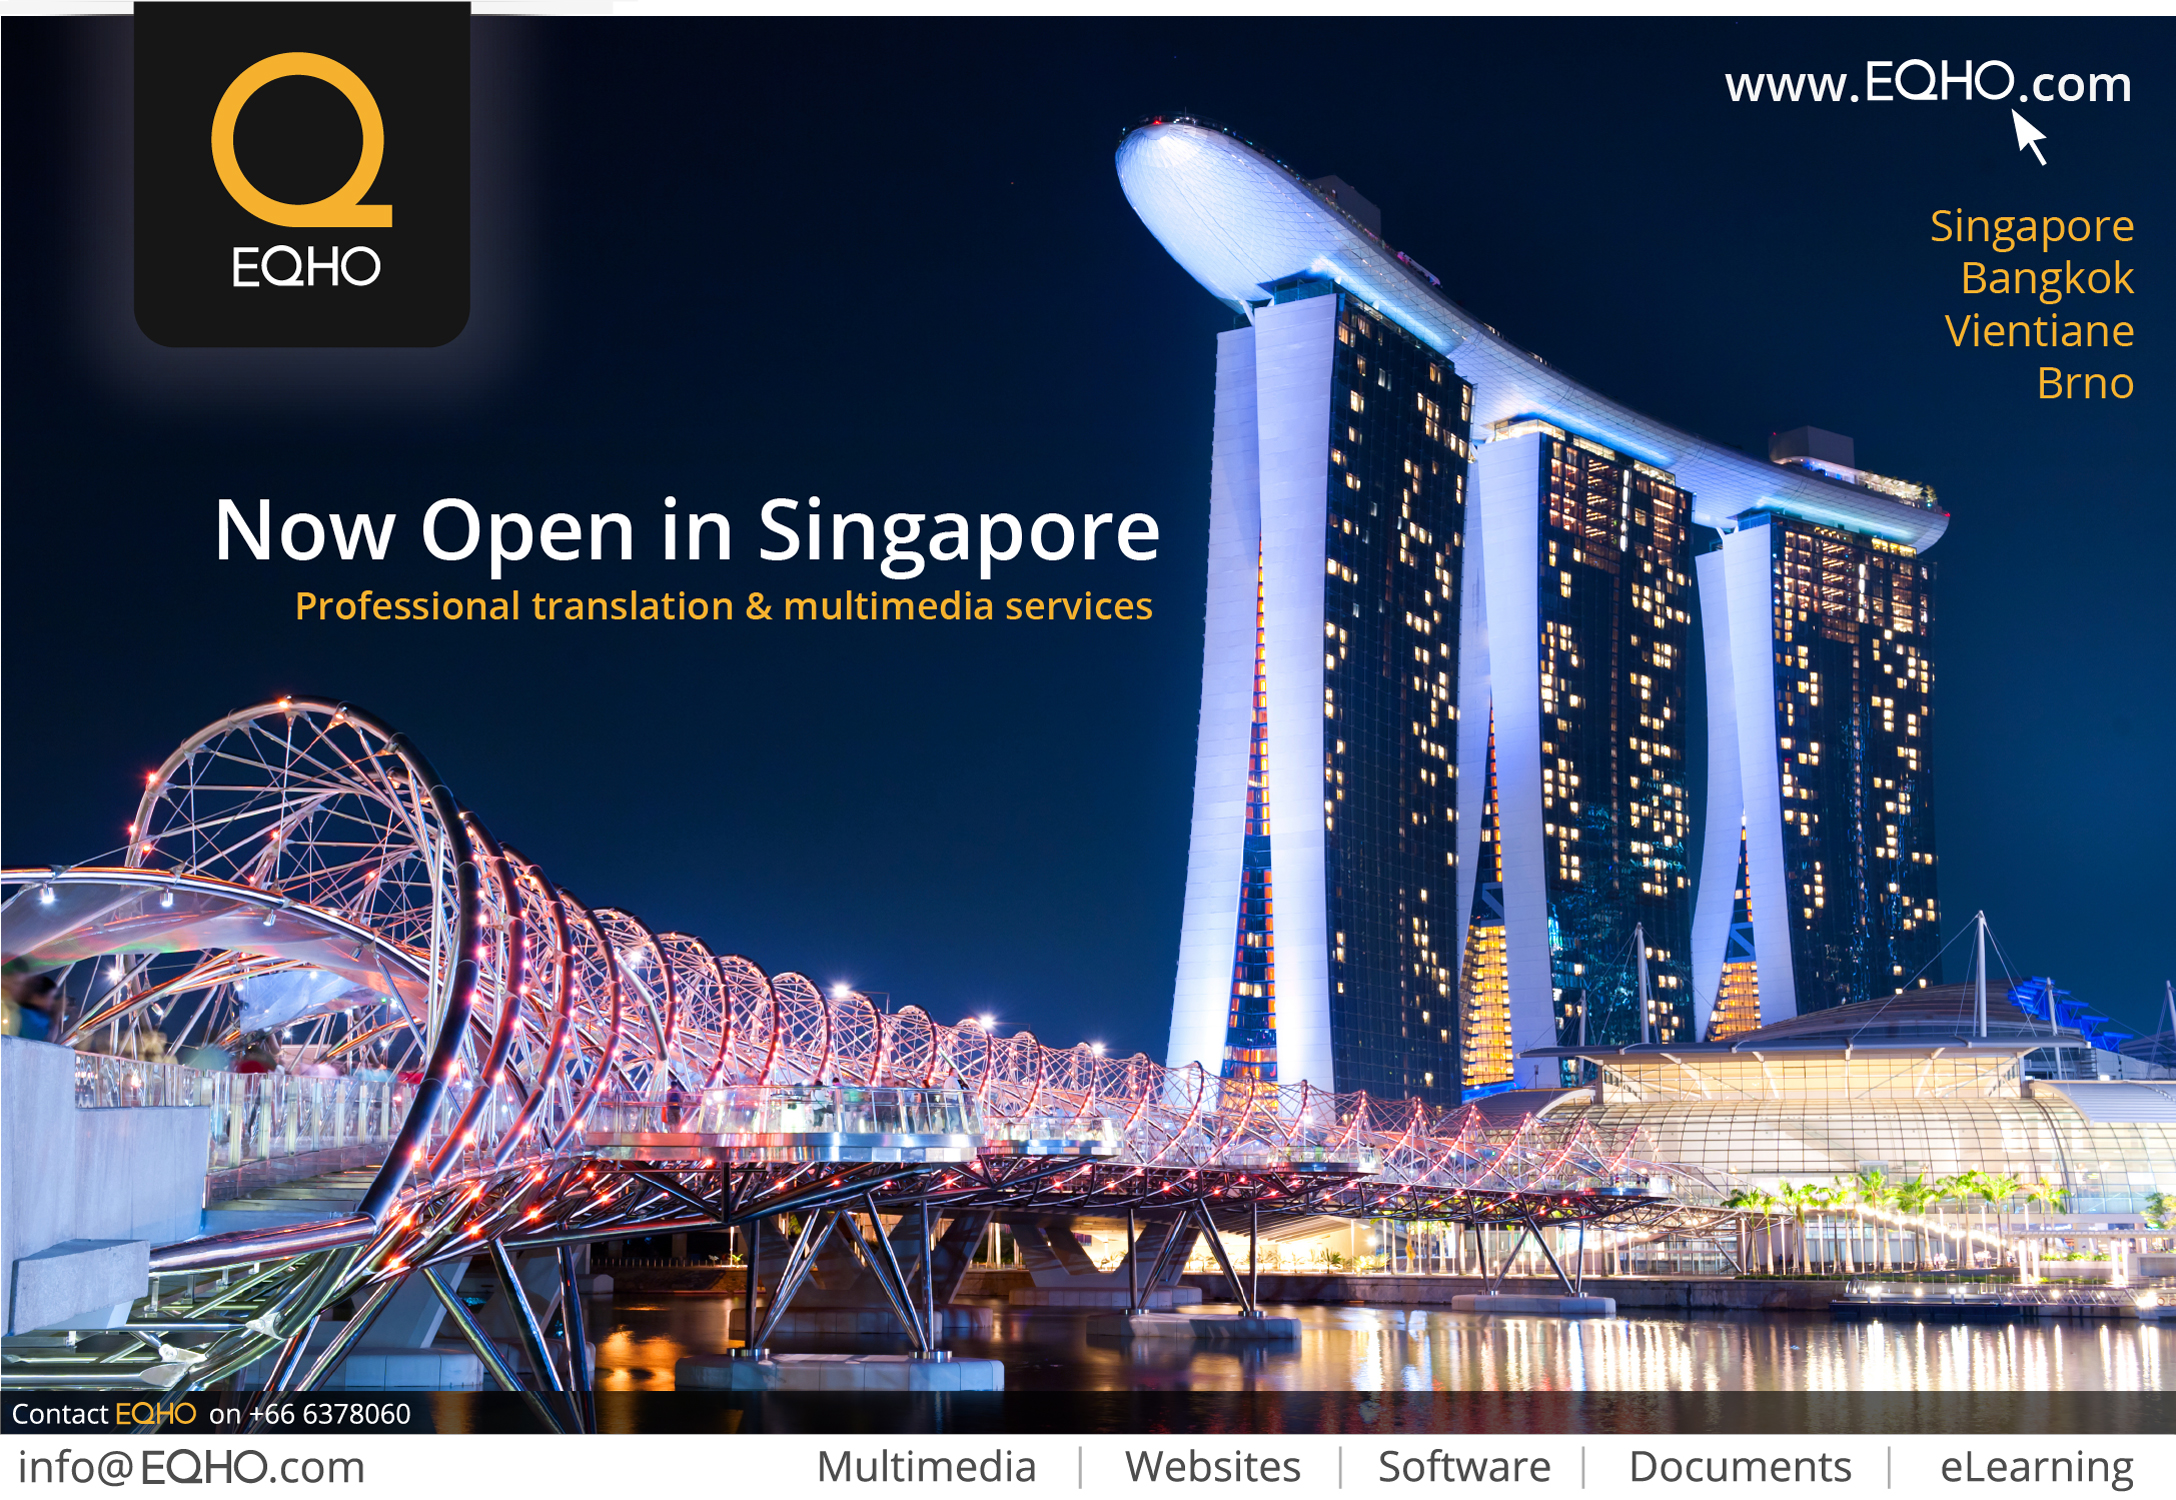 globalization in singapore Discover how globalization impacts governments and investors both in positive and negative ways, as well as some overall trends to consider.